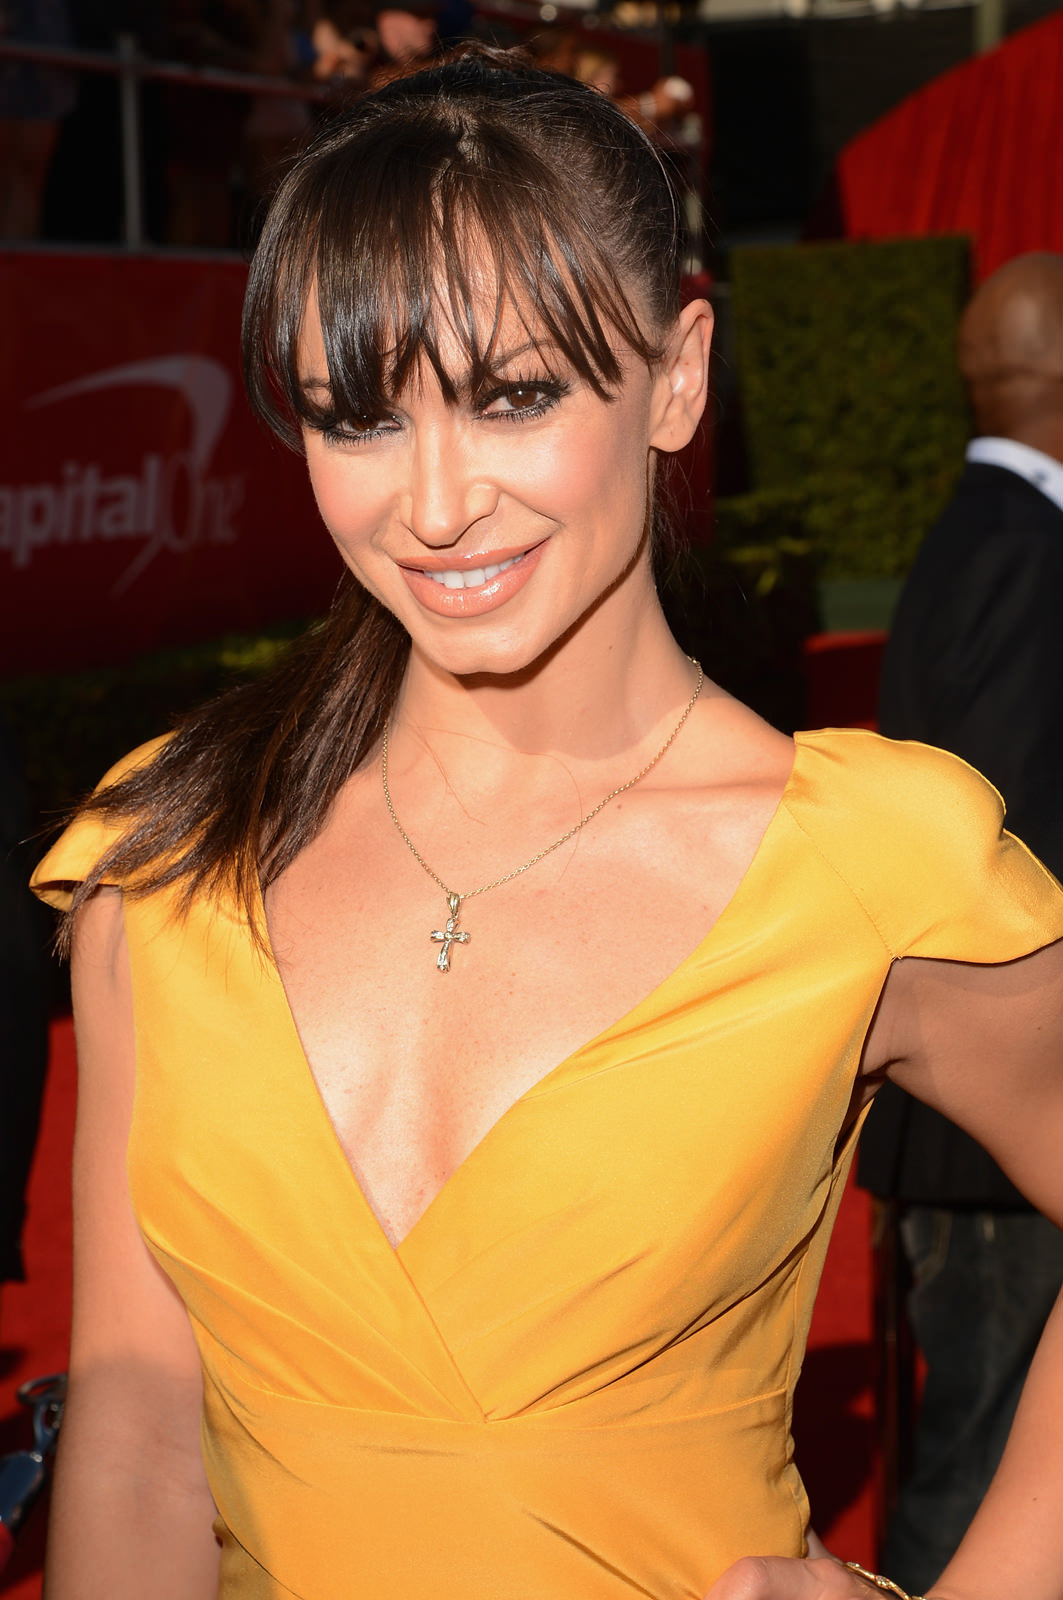 Karina Smirnoff Photo Gallery